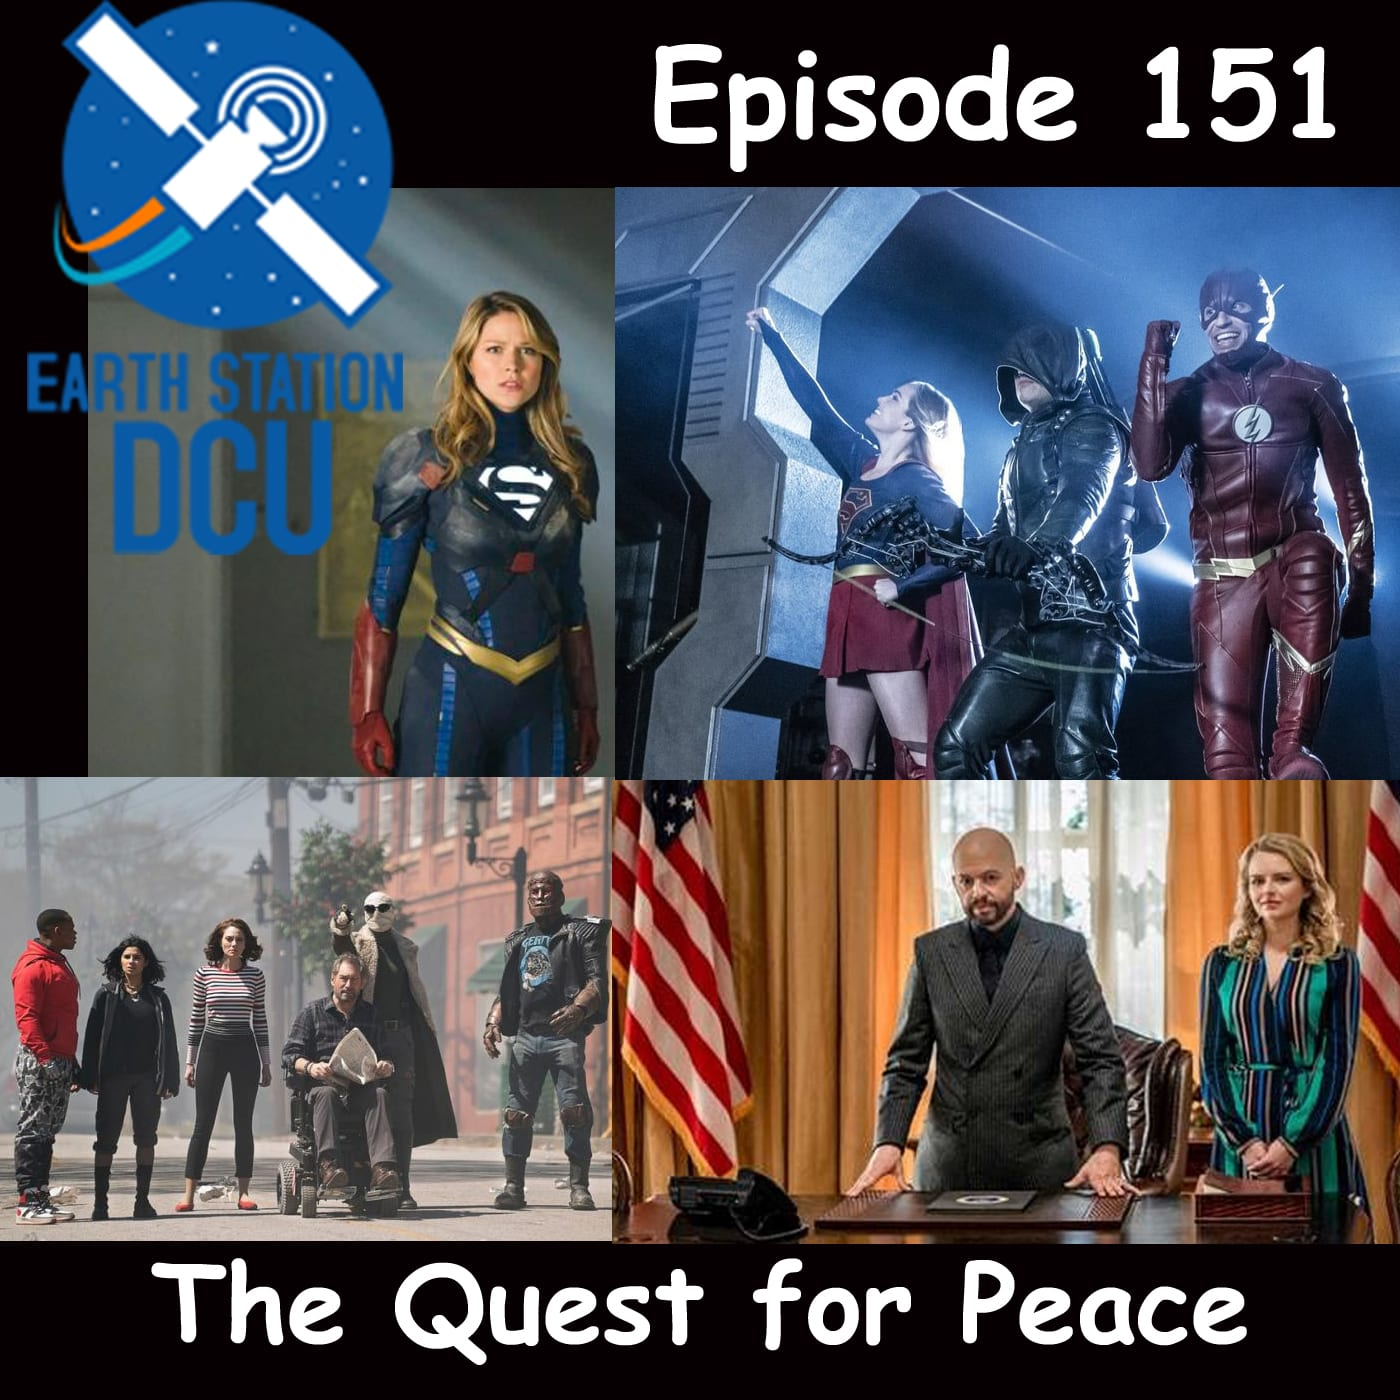 The Earth Station DCU Episode 151 – The Quest for Peace